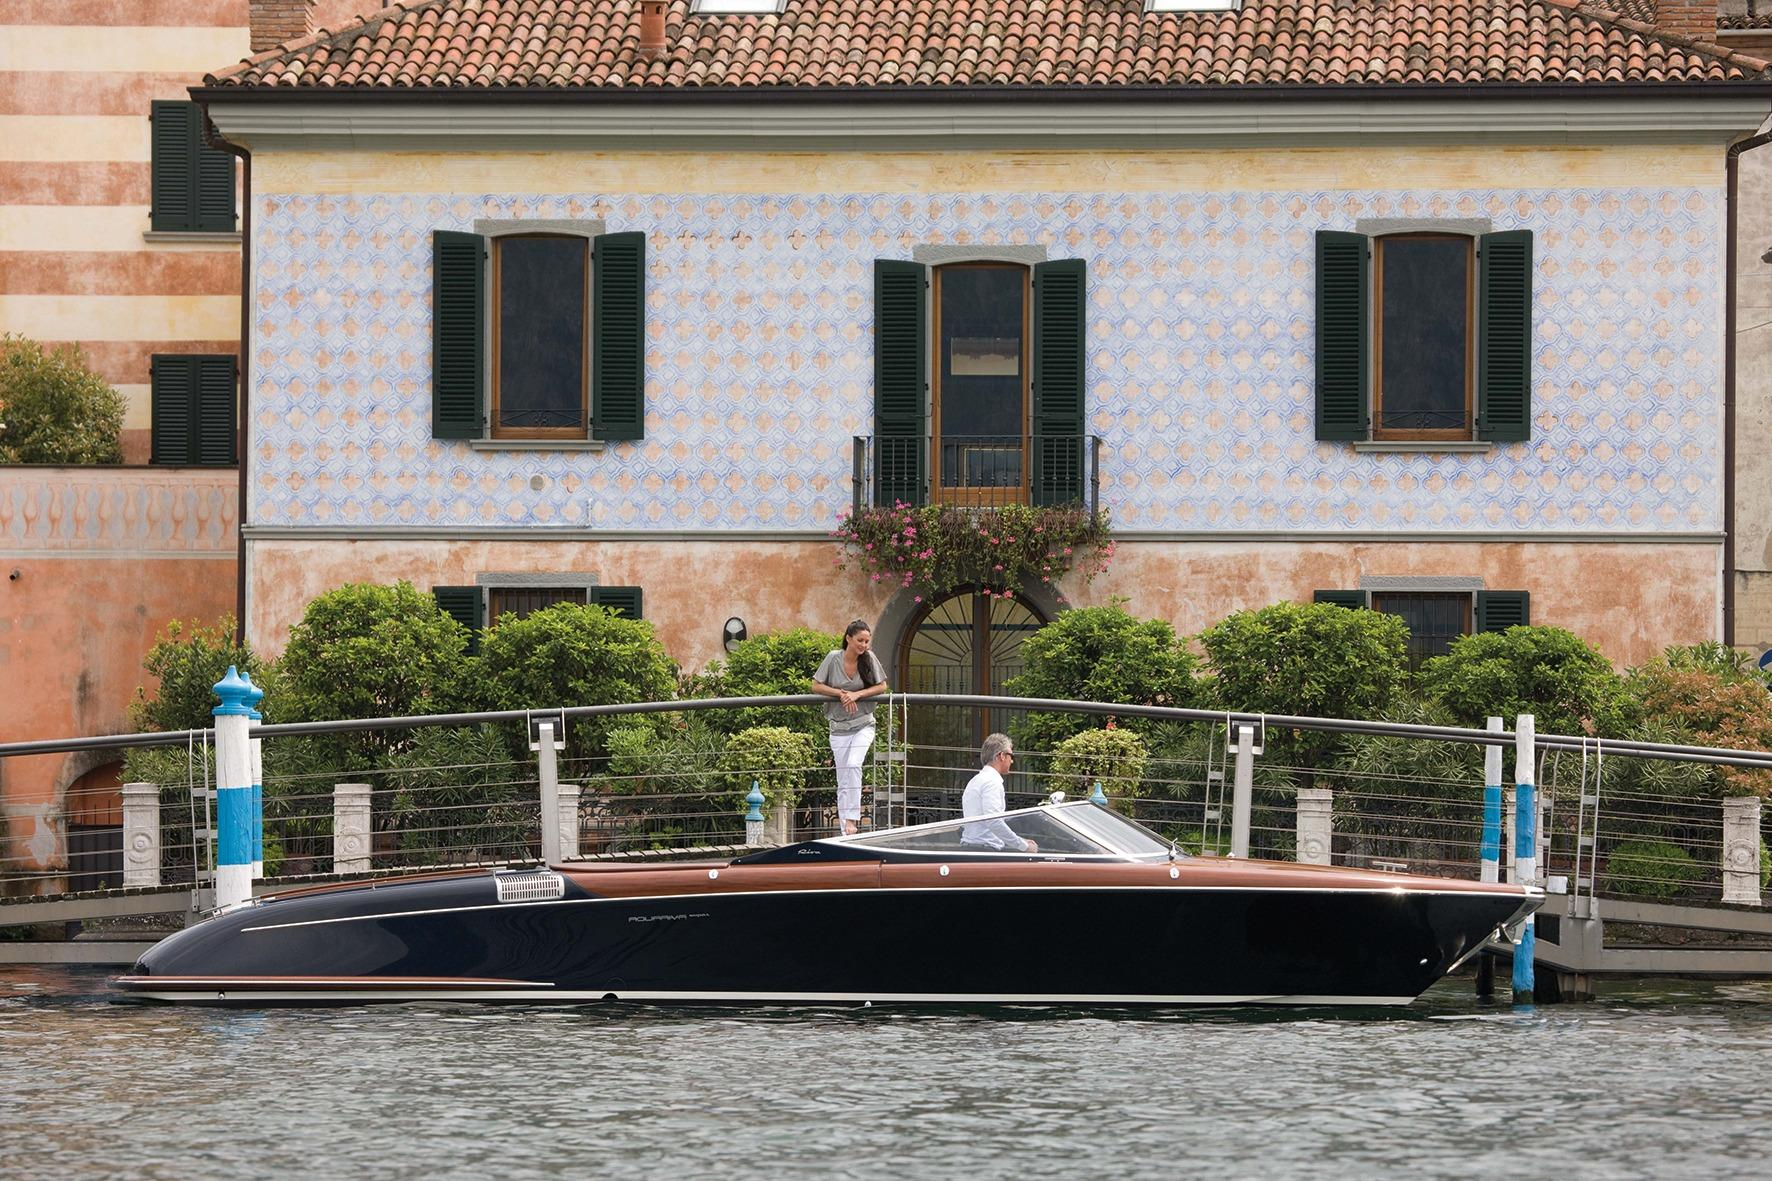 Manufacturer Provided Image: Riva Aquariva Super Moored